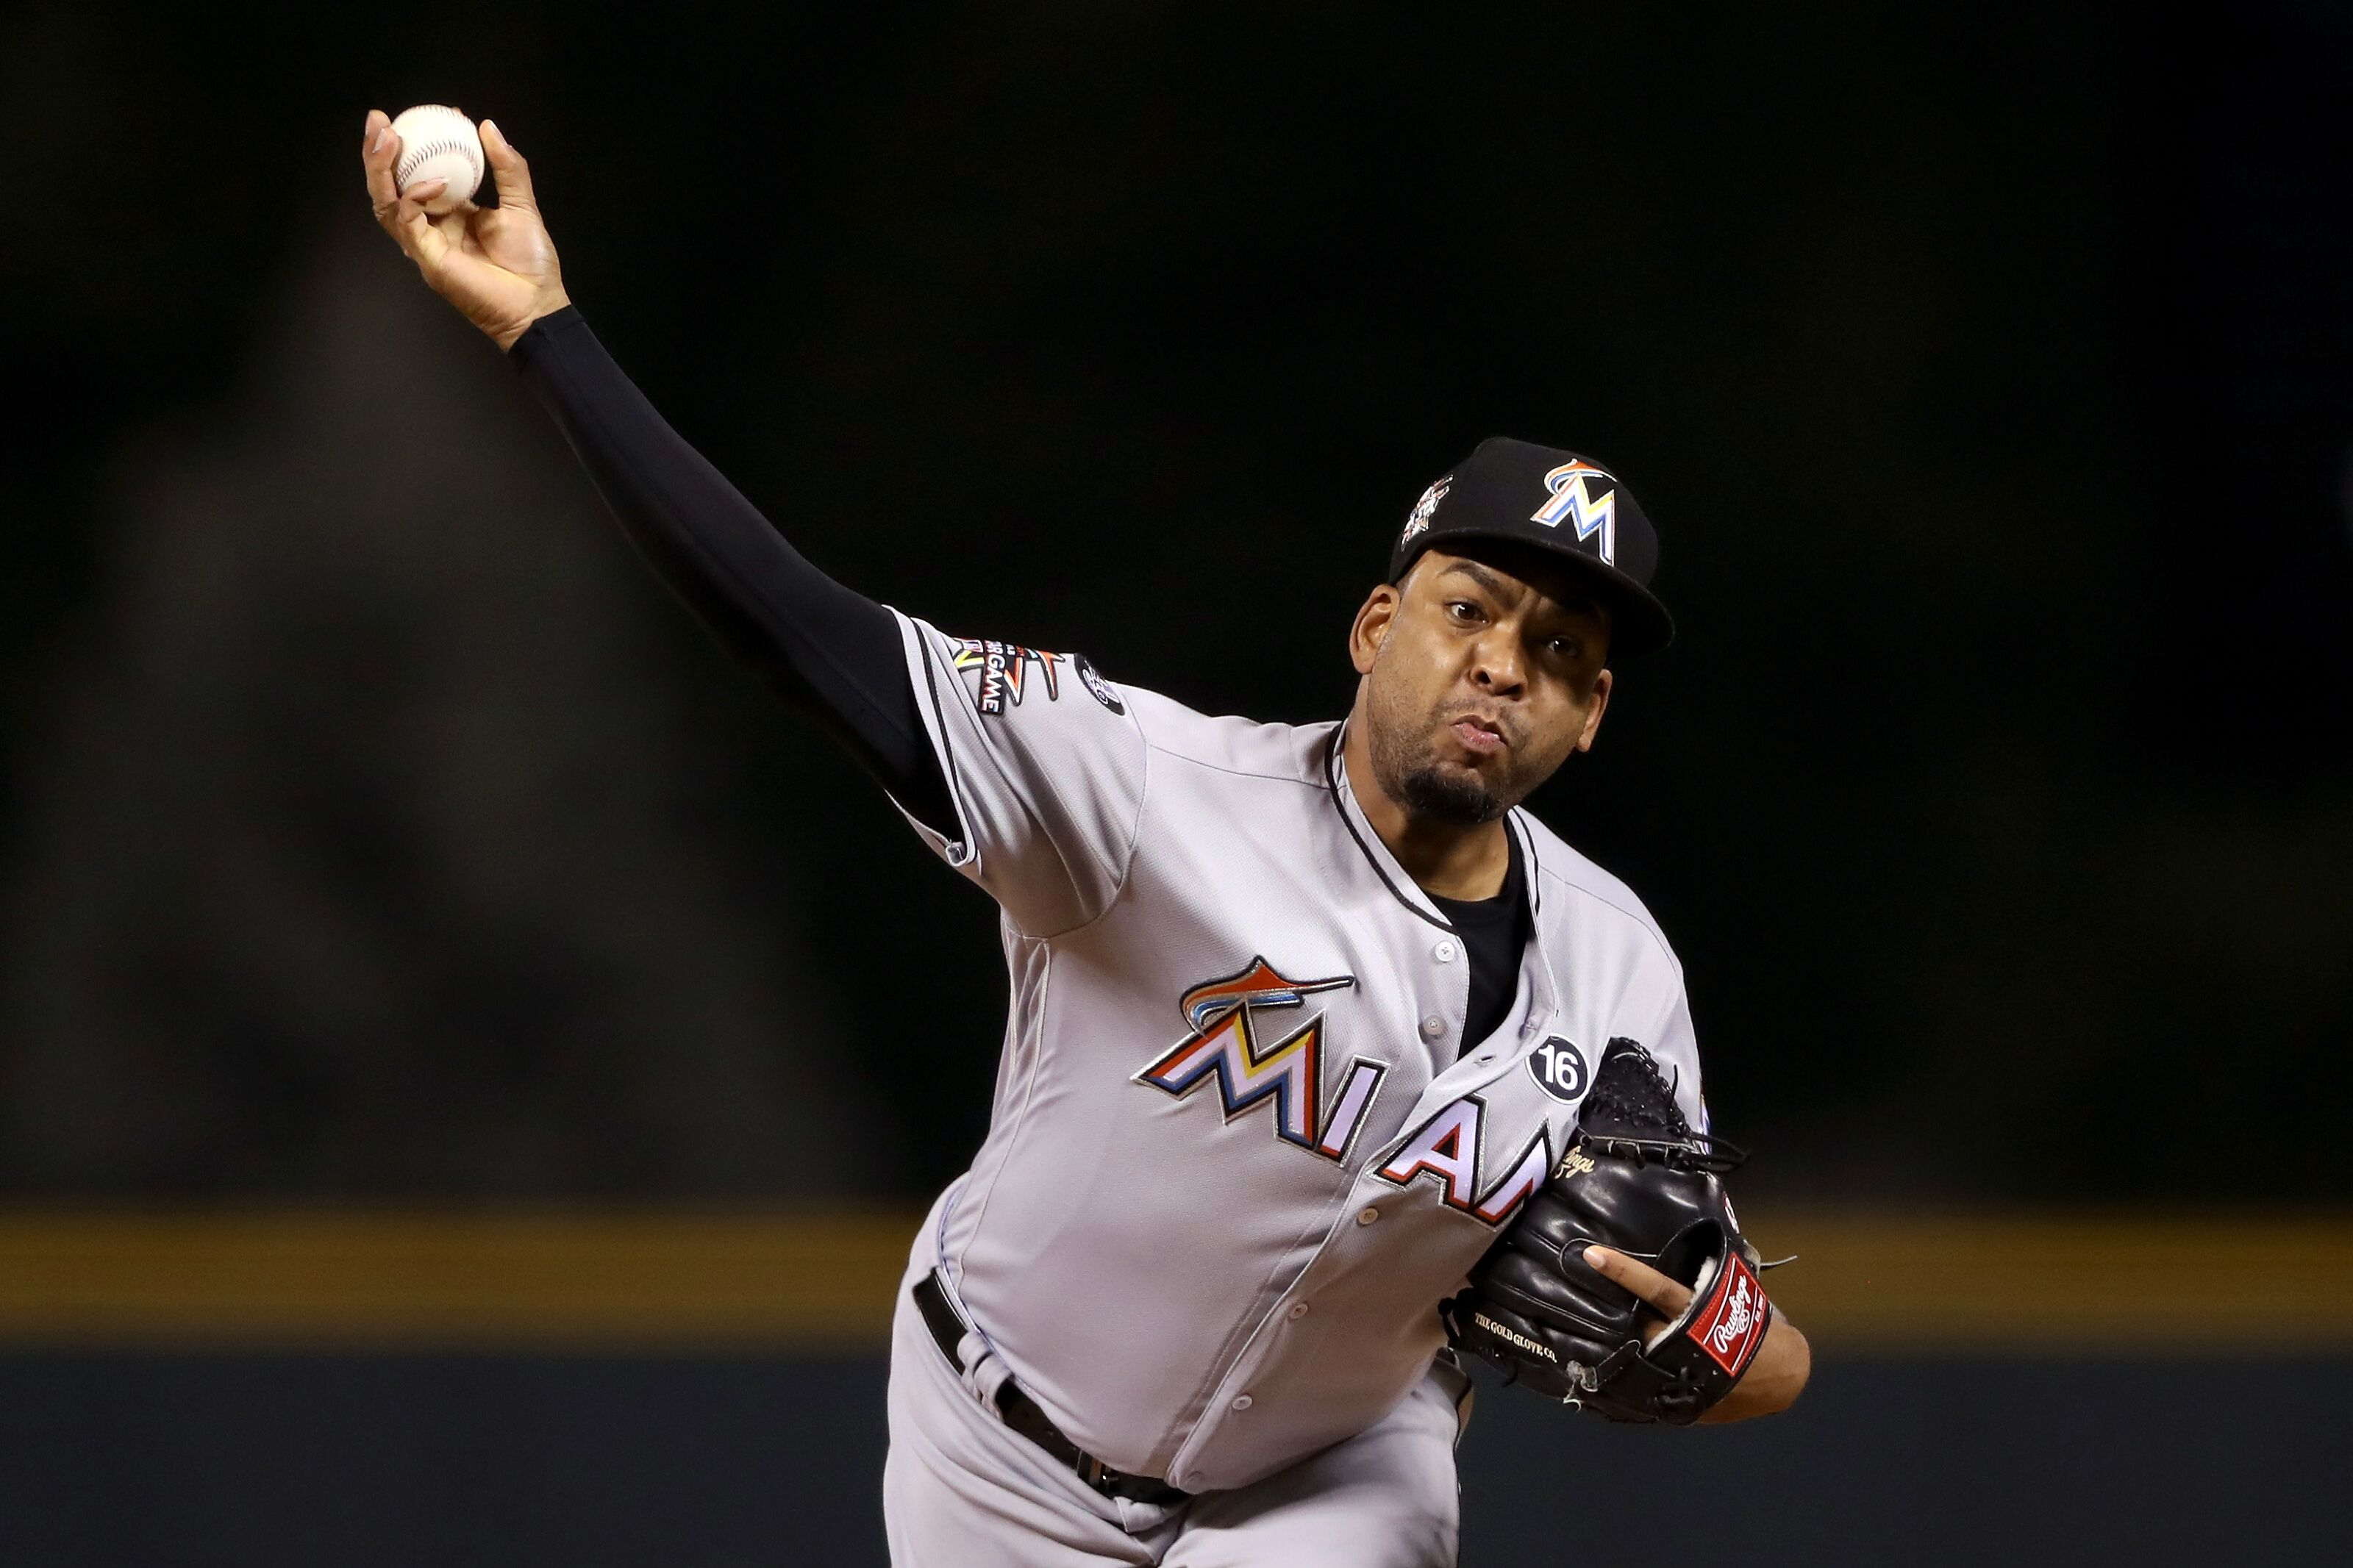 Miami marlins trade odrisamer despaigne to the angels malvernweather Images